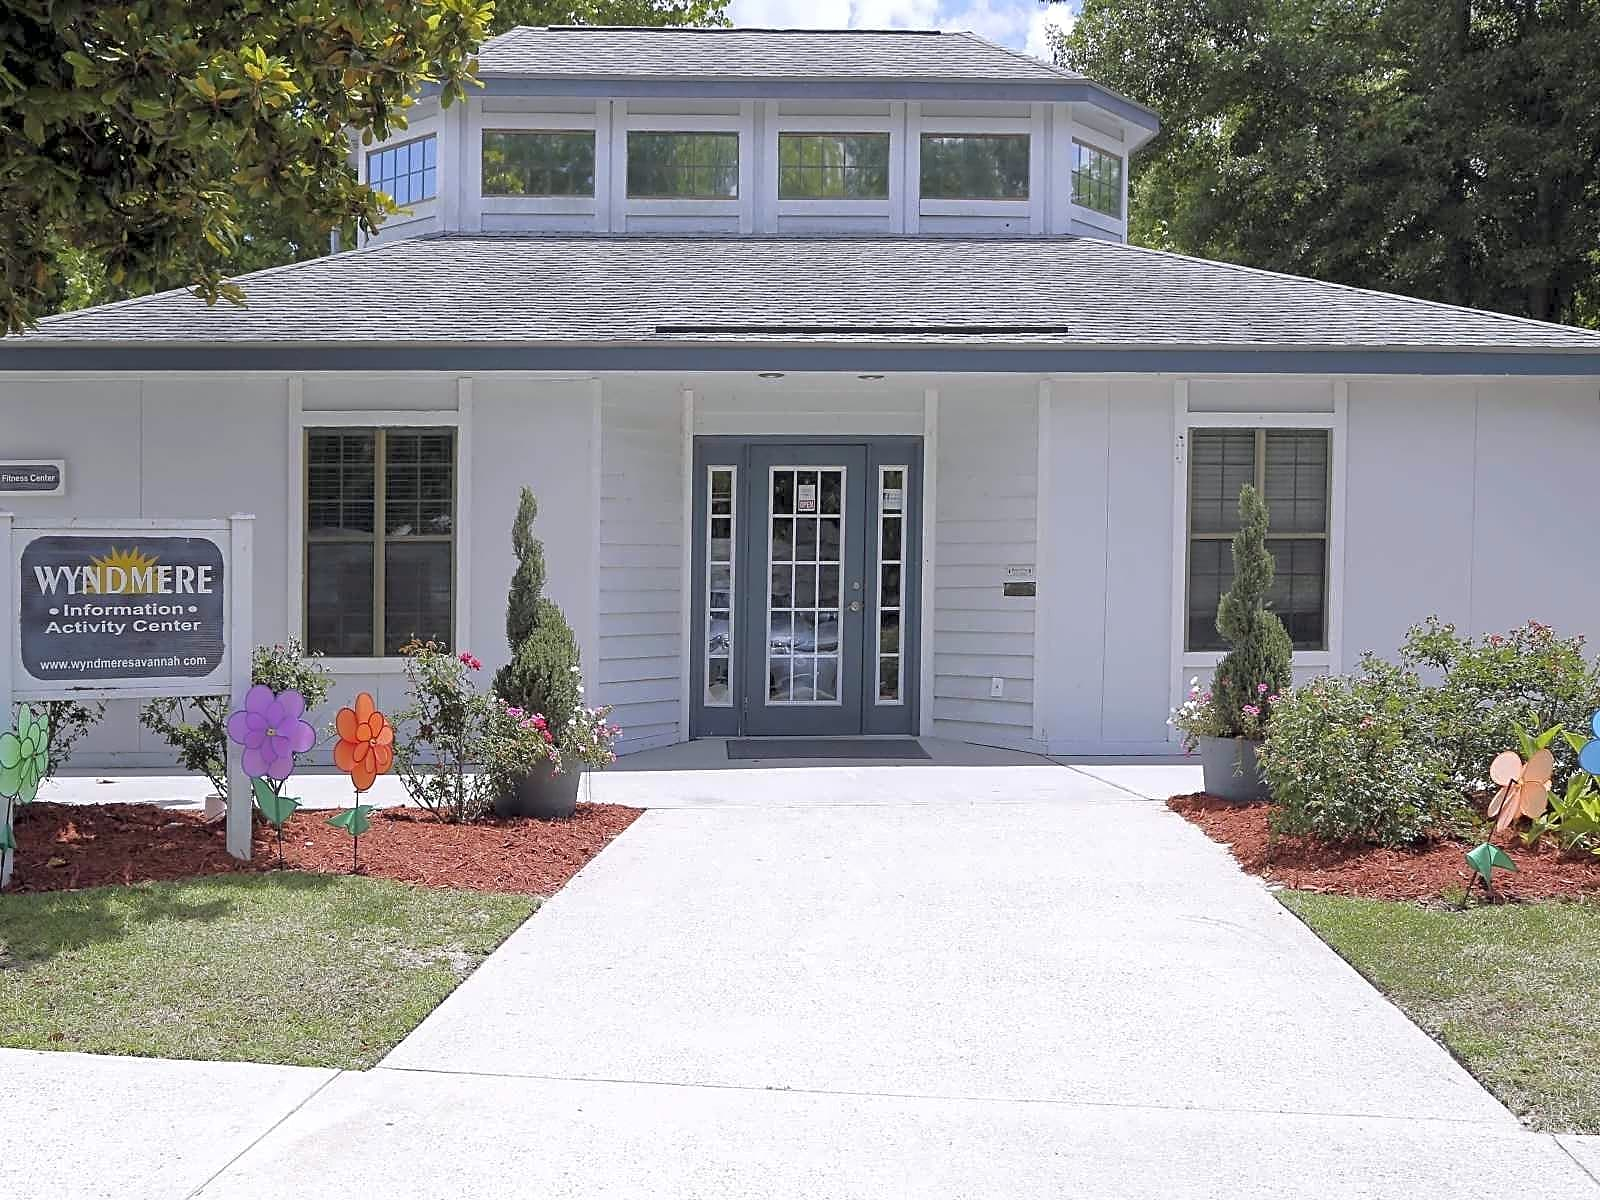 Wyndmere apartments garden city ga 31408 for Apartments near savannah college of art and design